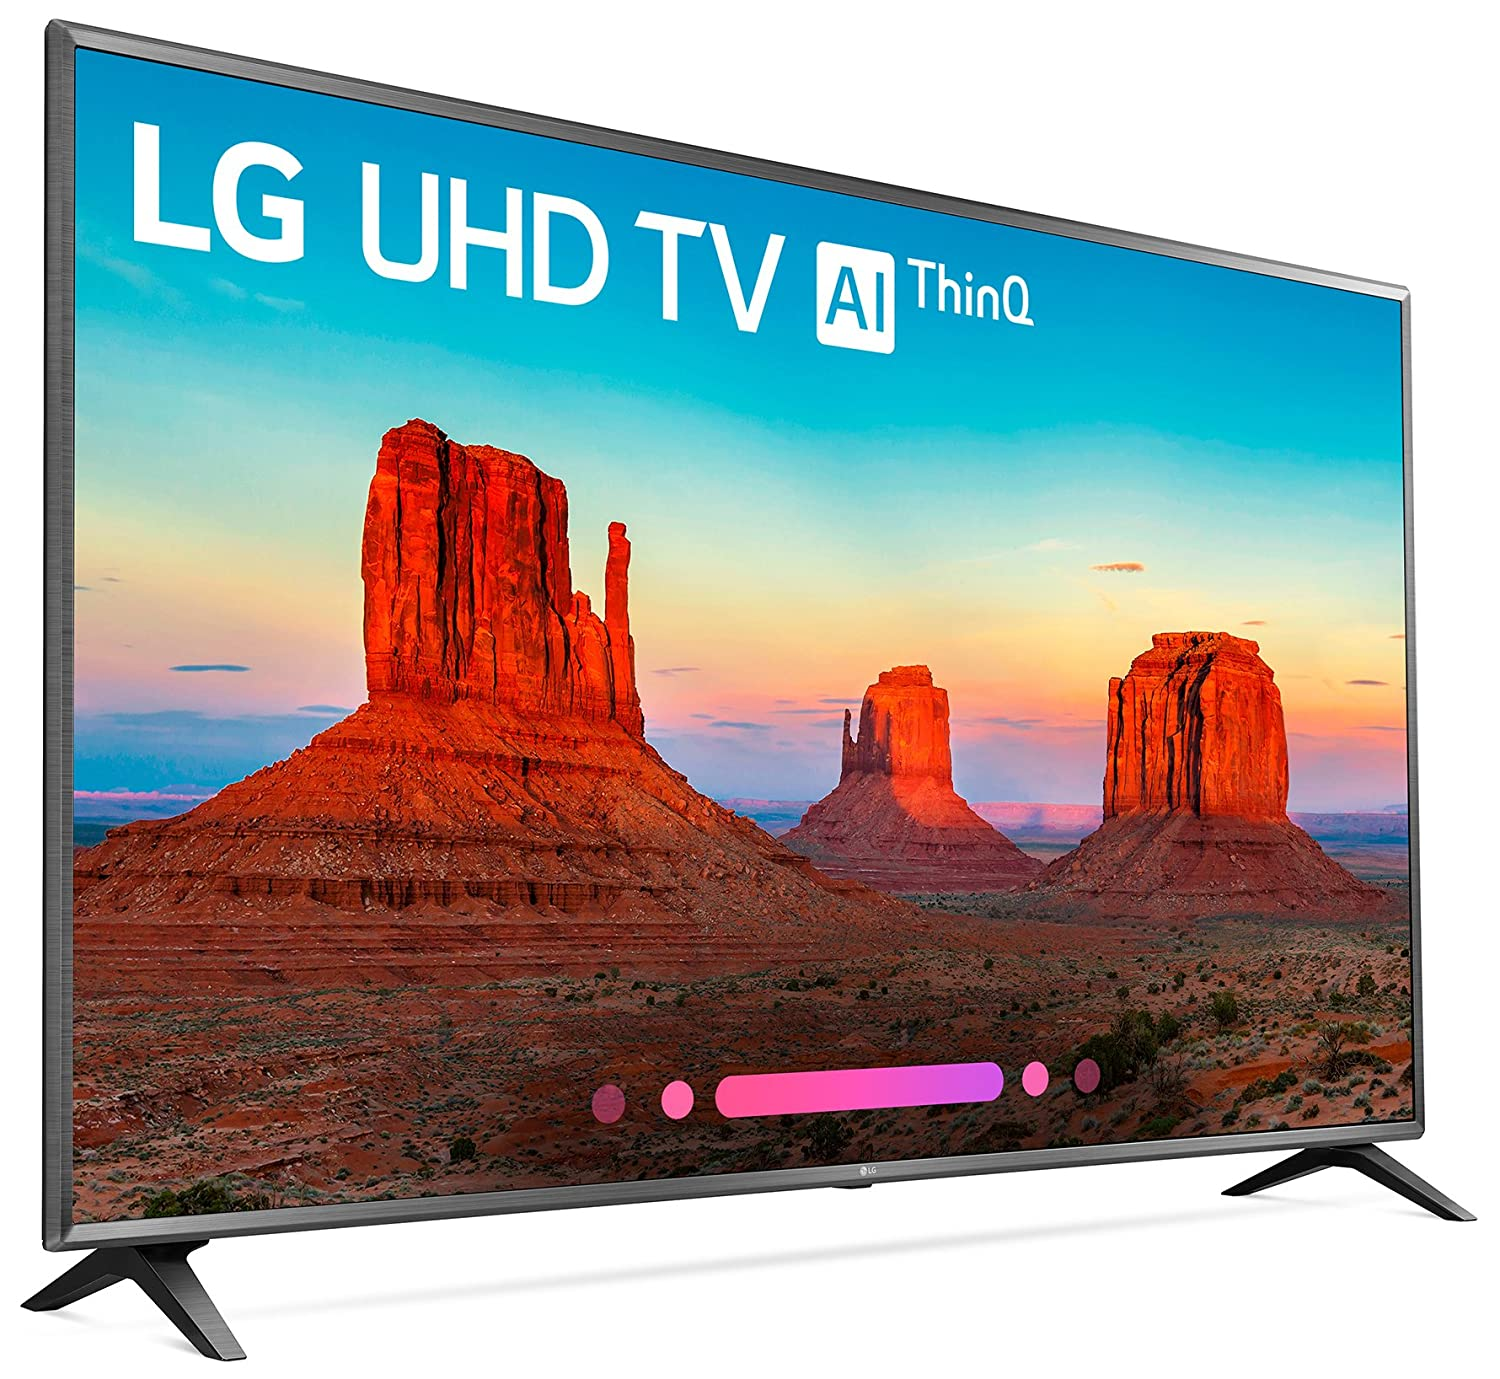 ce8863919 Amazon.com  LG Electronics 75UK6570PUB 75-Inch 4K Ultra HD Smart LED TV  (2018 Model)  Electronics